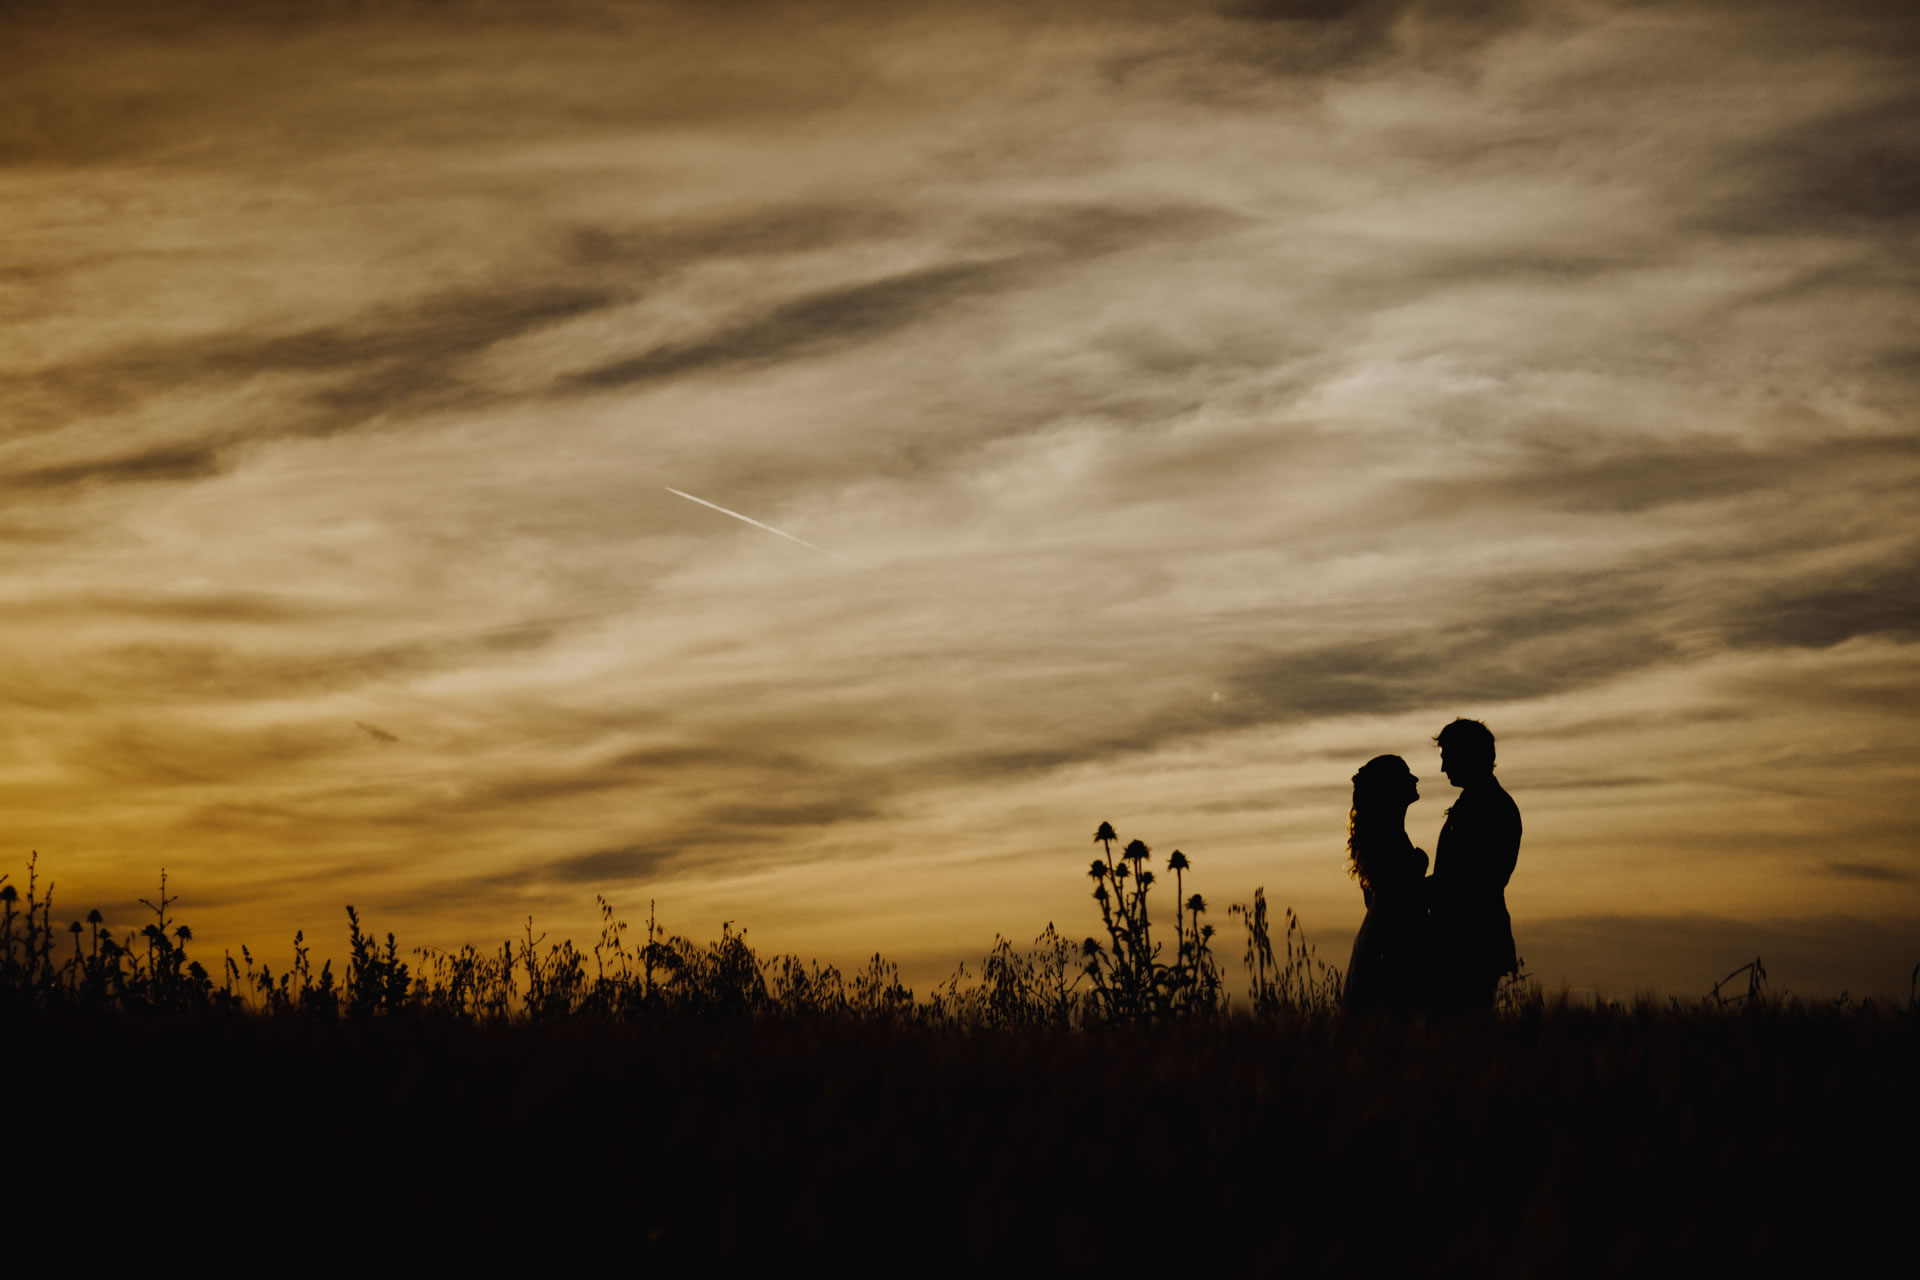 Silhouettes - 38 :: Wedding in Perugia countryside. Jean and Toby :: Luxury wedding photography - 37 :: Silhouettes - 38